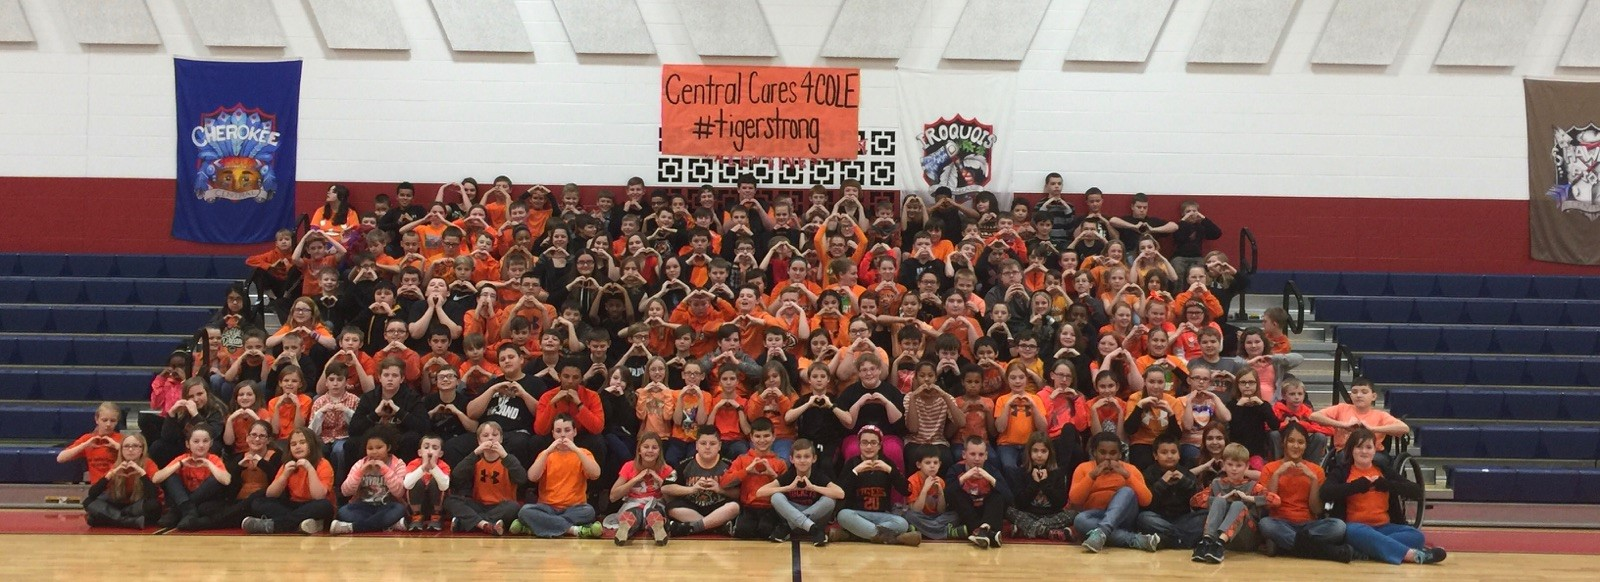 PCIS is #tigerstrong